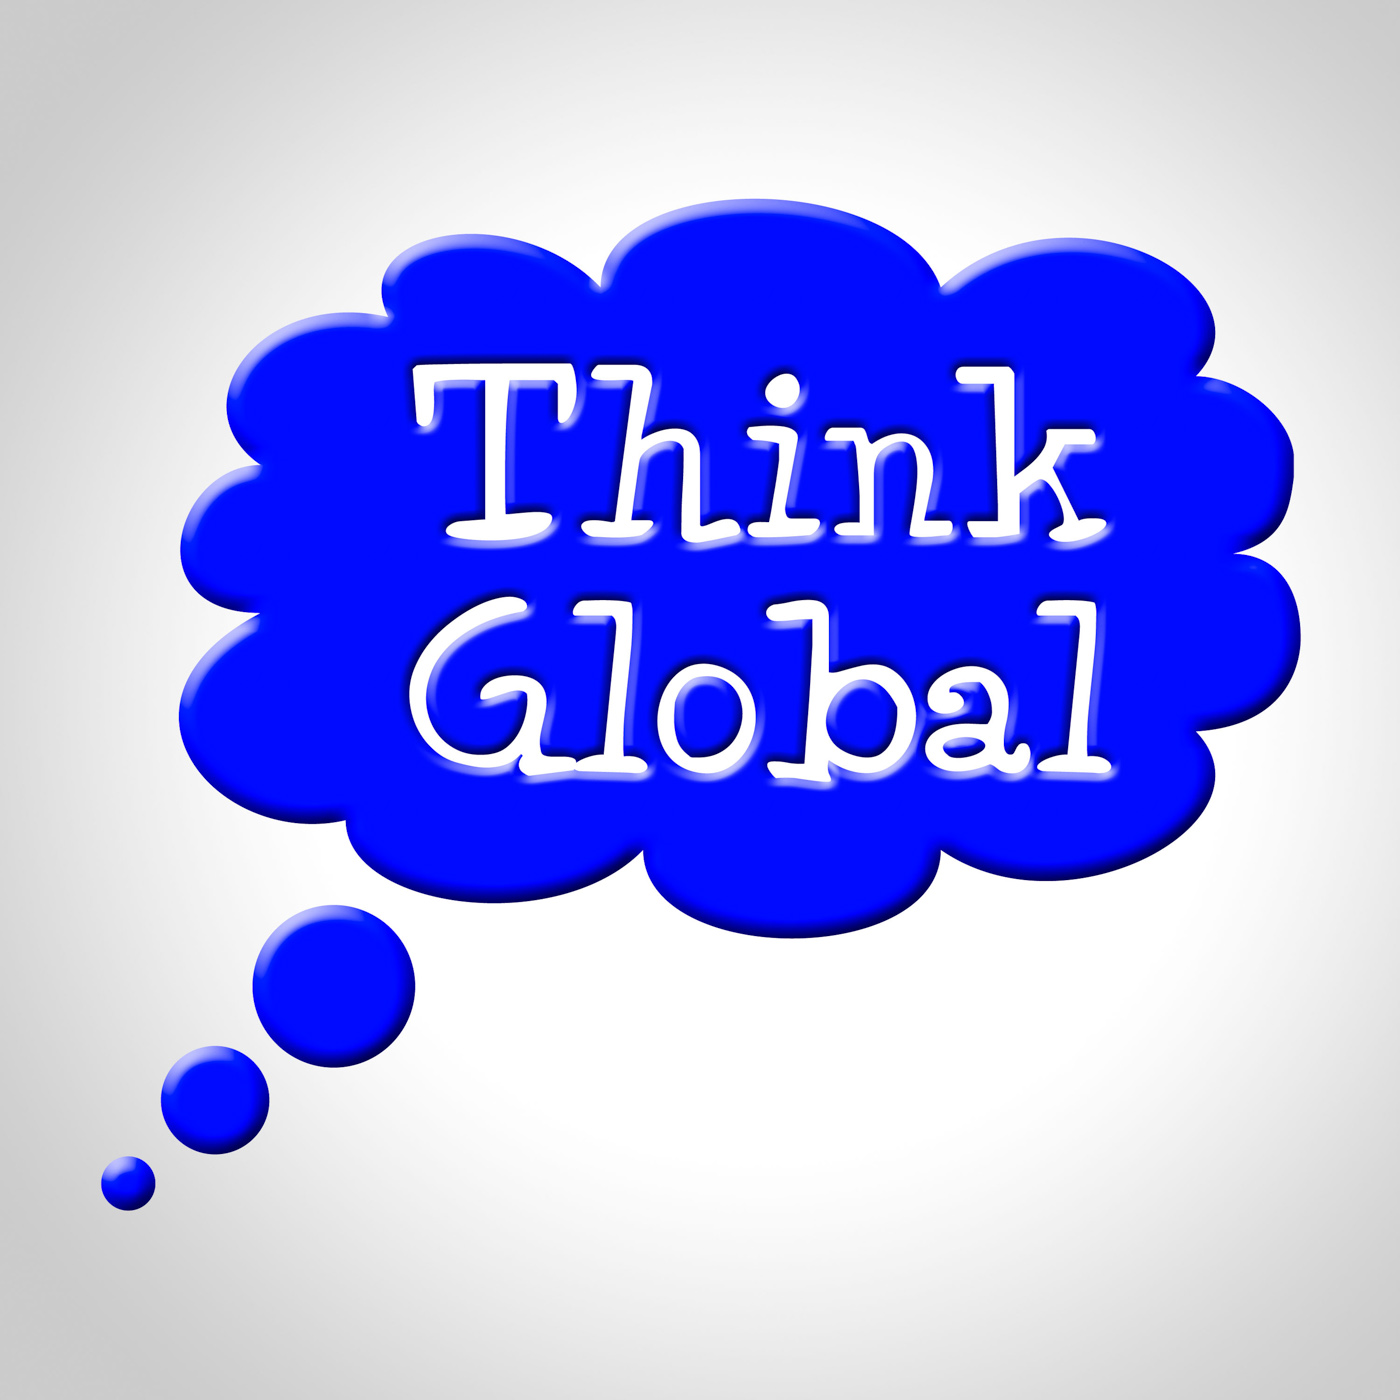 Think global means contemplation earth and consider photo